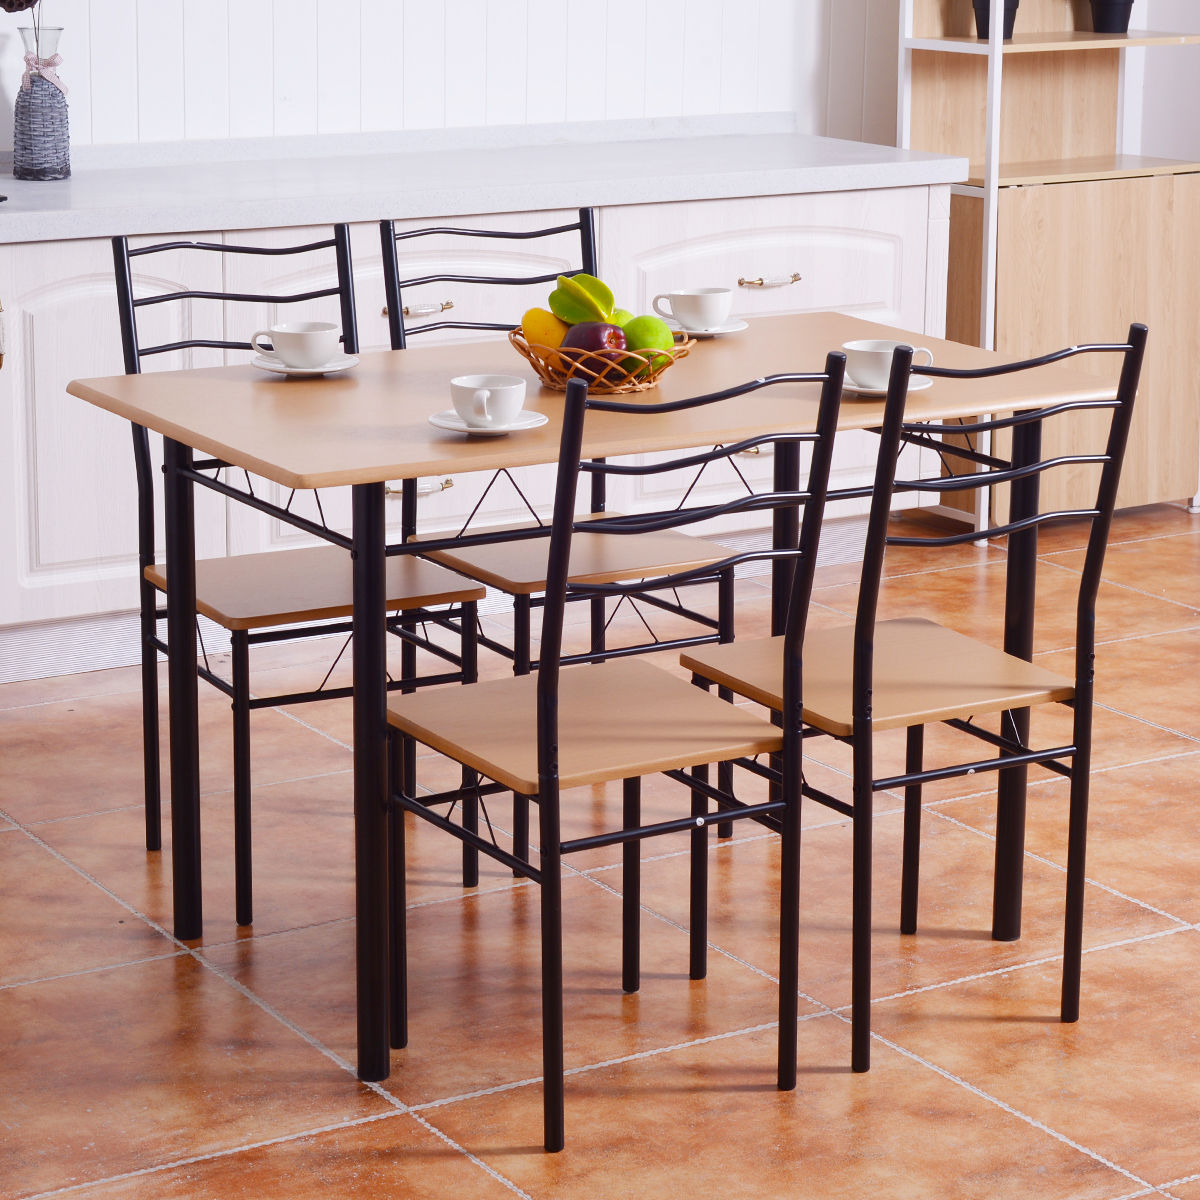 Costway 6 Piece Dining Table Set with 6 Chairs Wood Metal Kitchen